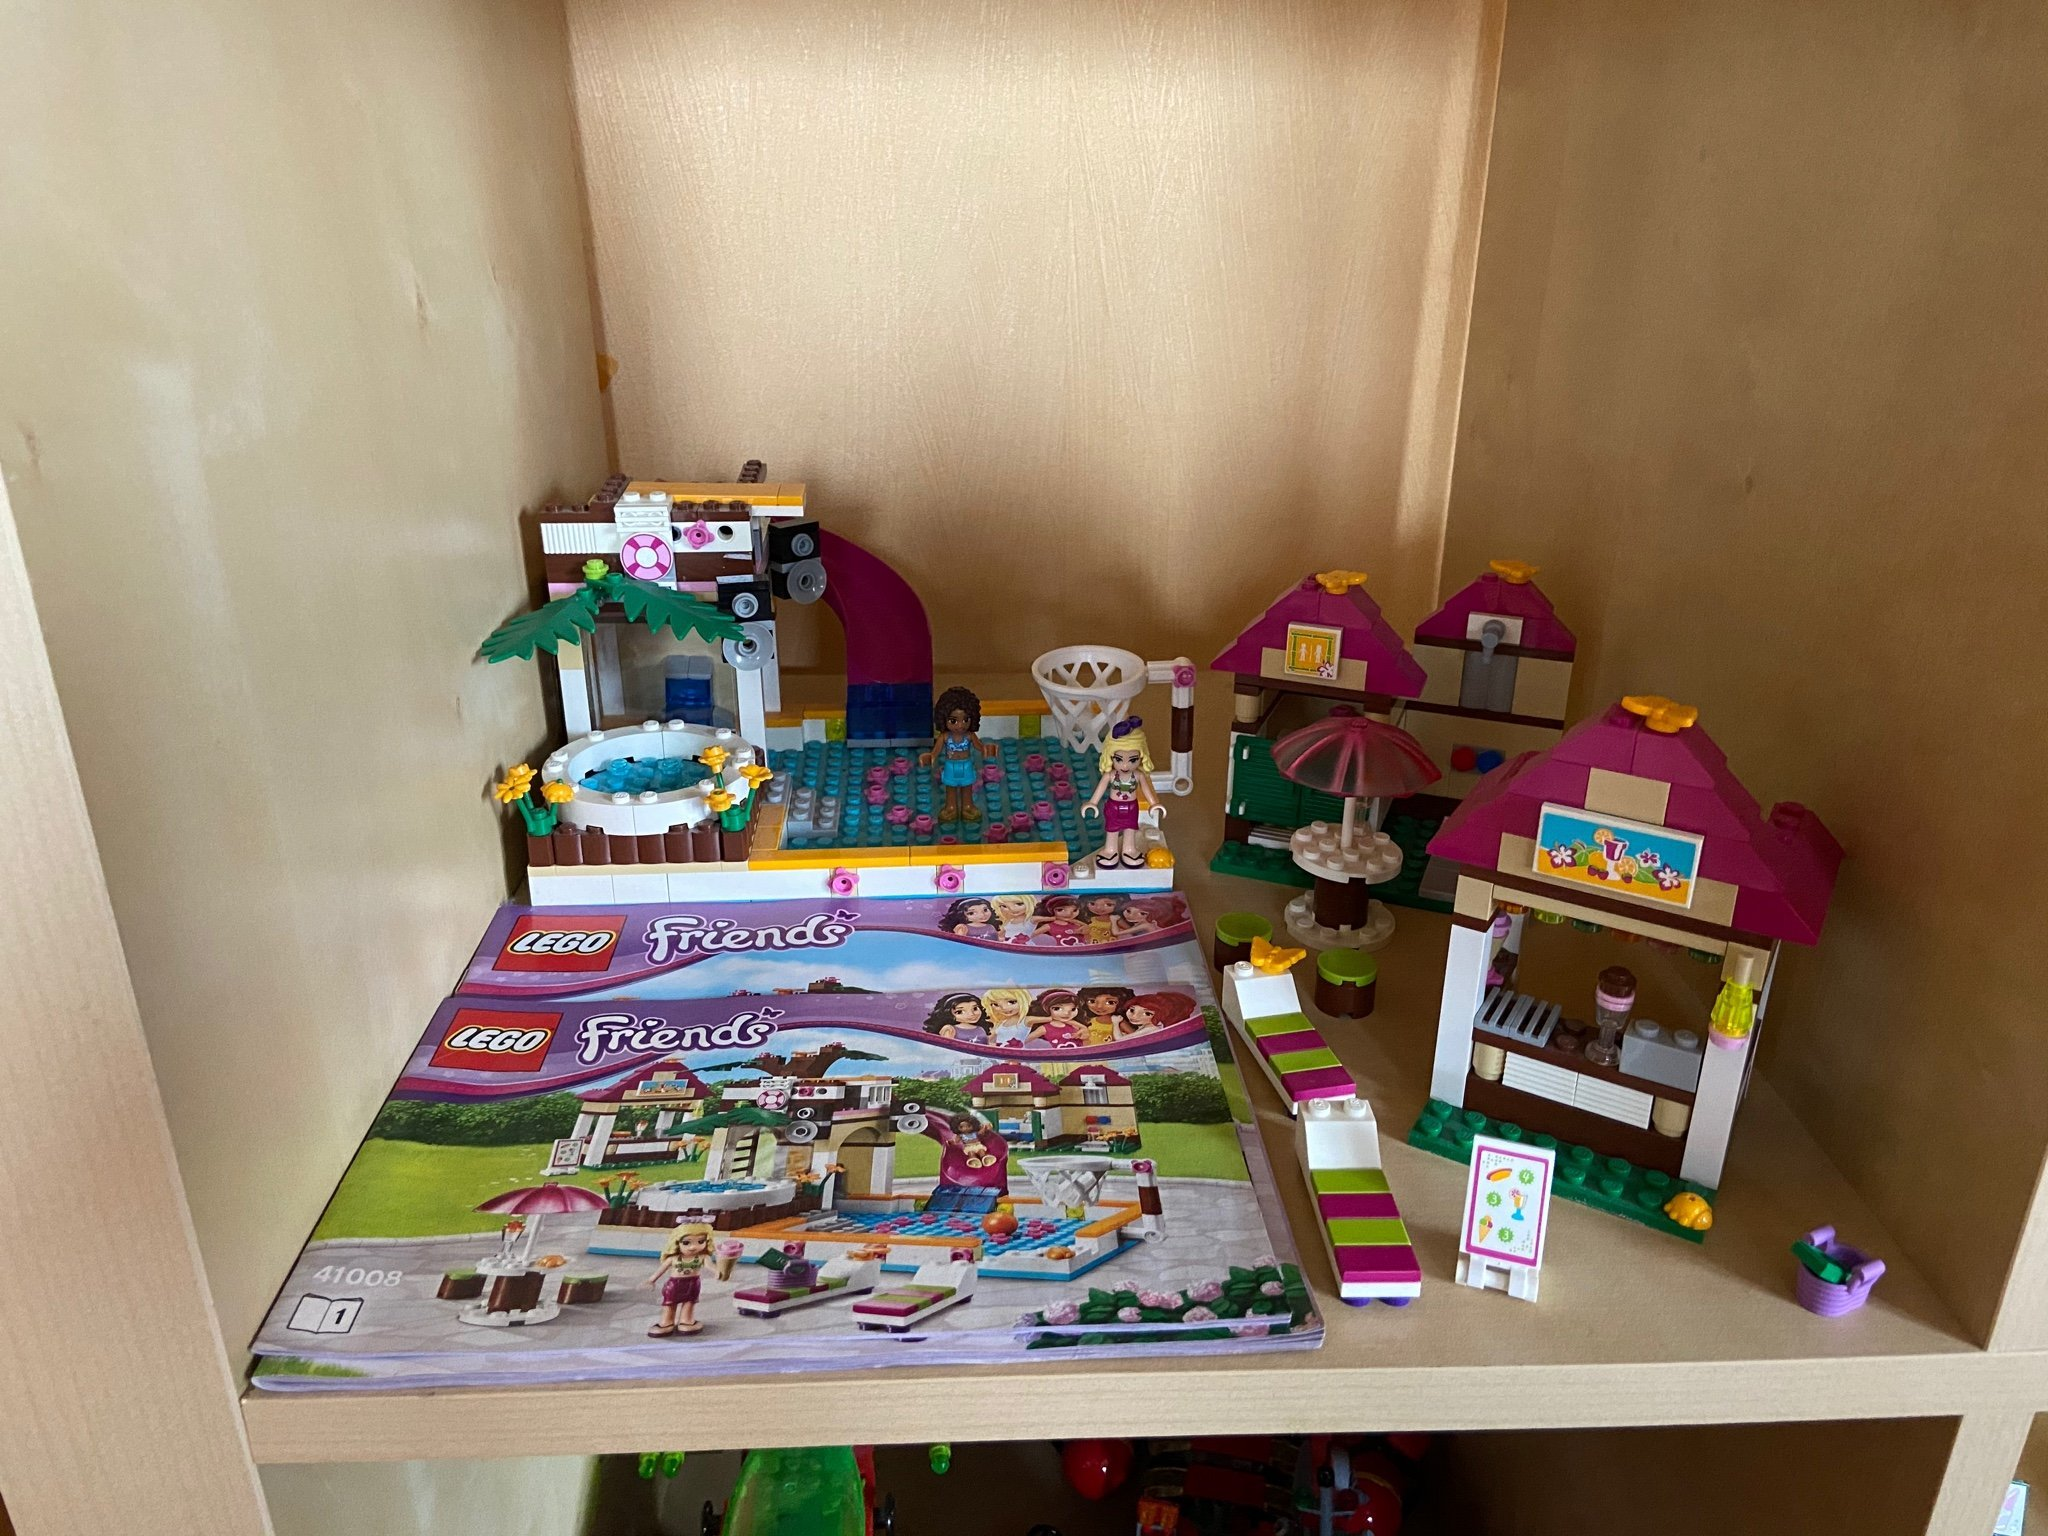 LEGO Friends 41008 pool